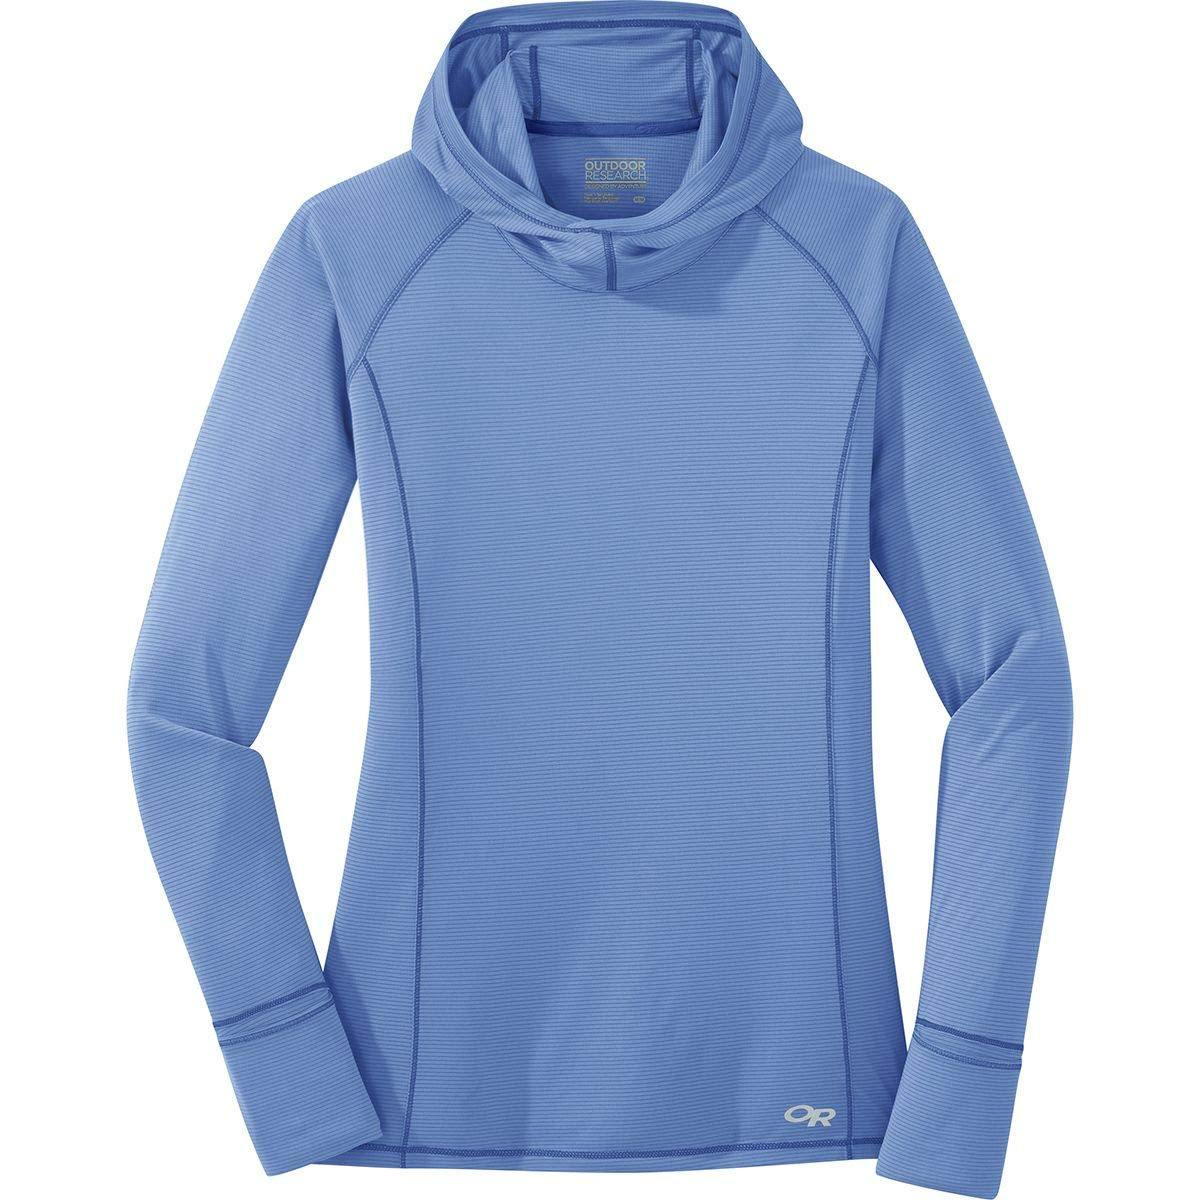 Outdoor Research Women's Echo Hoody, Hydrangea, Large by Outdoor Research